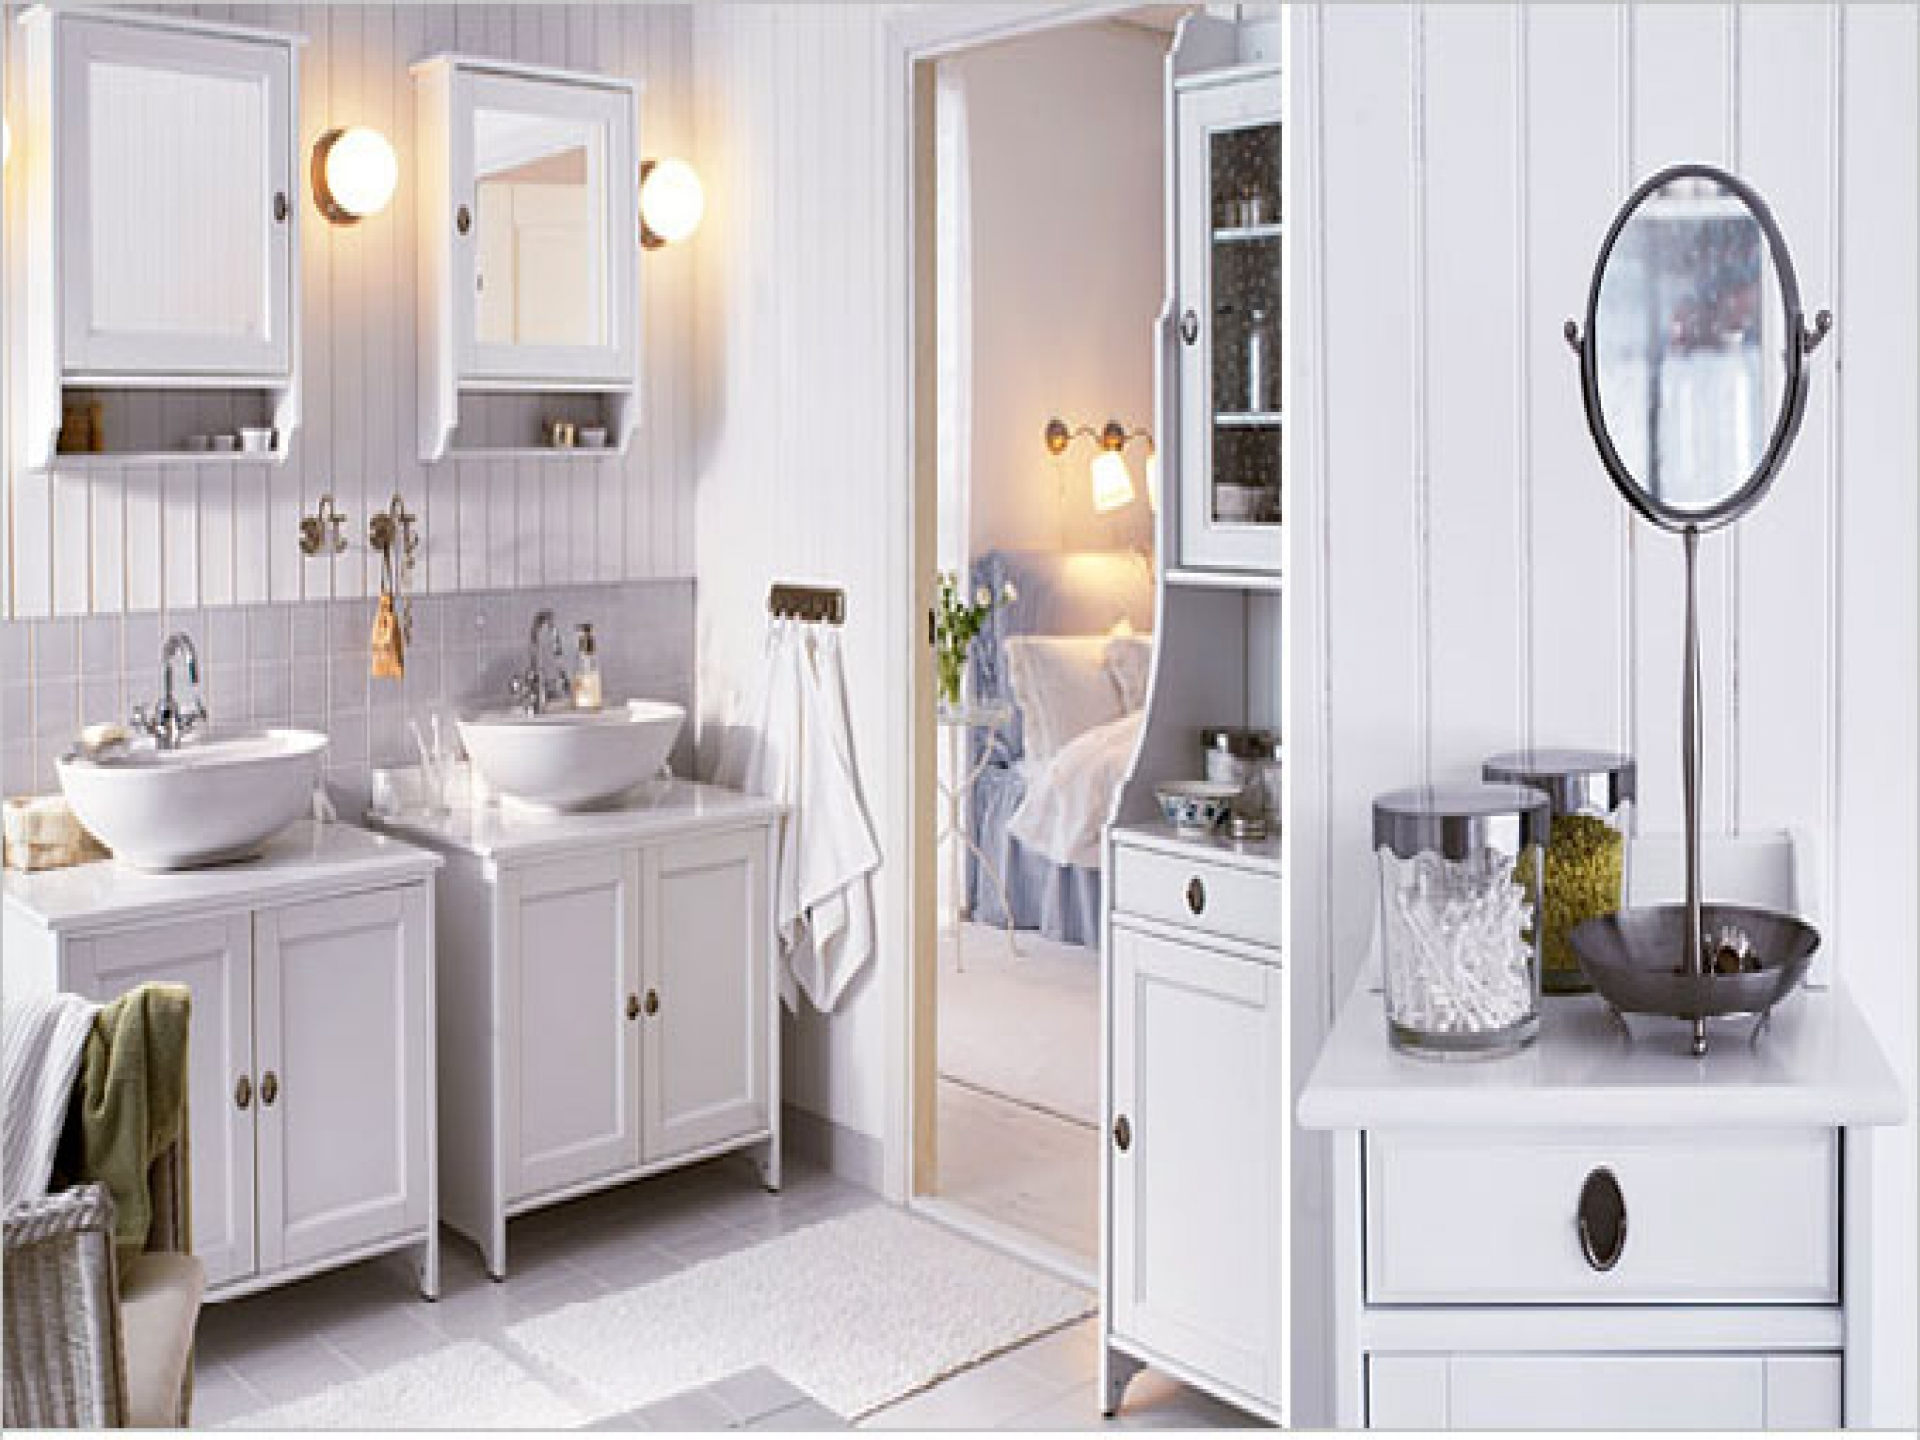 Adorable Vintage White Ikea Bath Cabinet Design With Twin Wall Mirror And Bowl Sink And Wainscotting